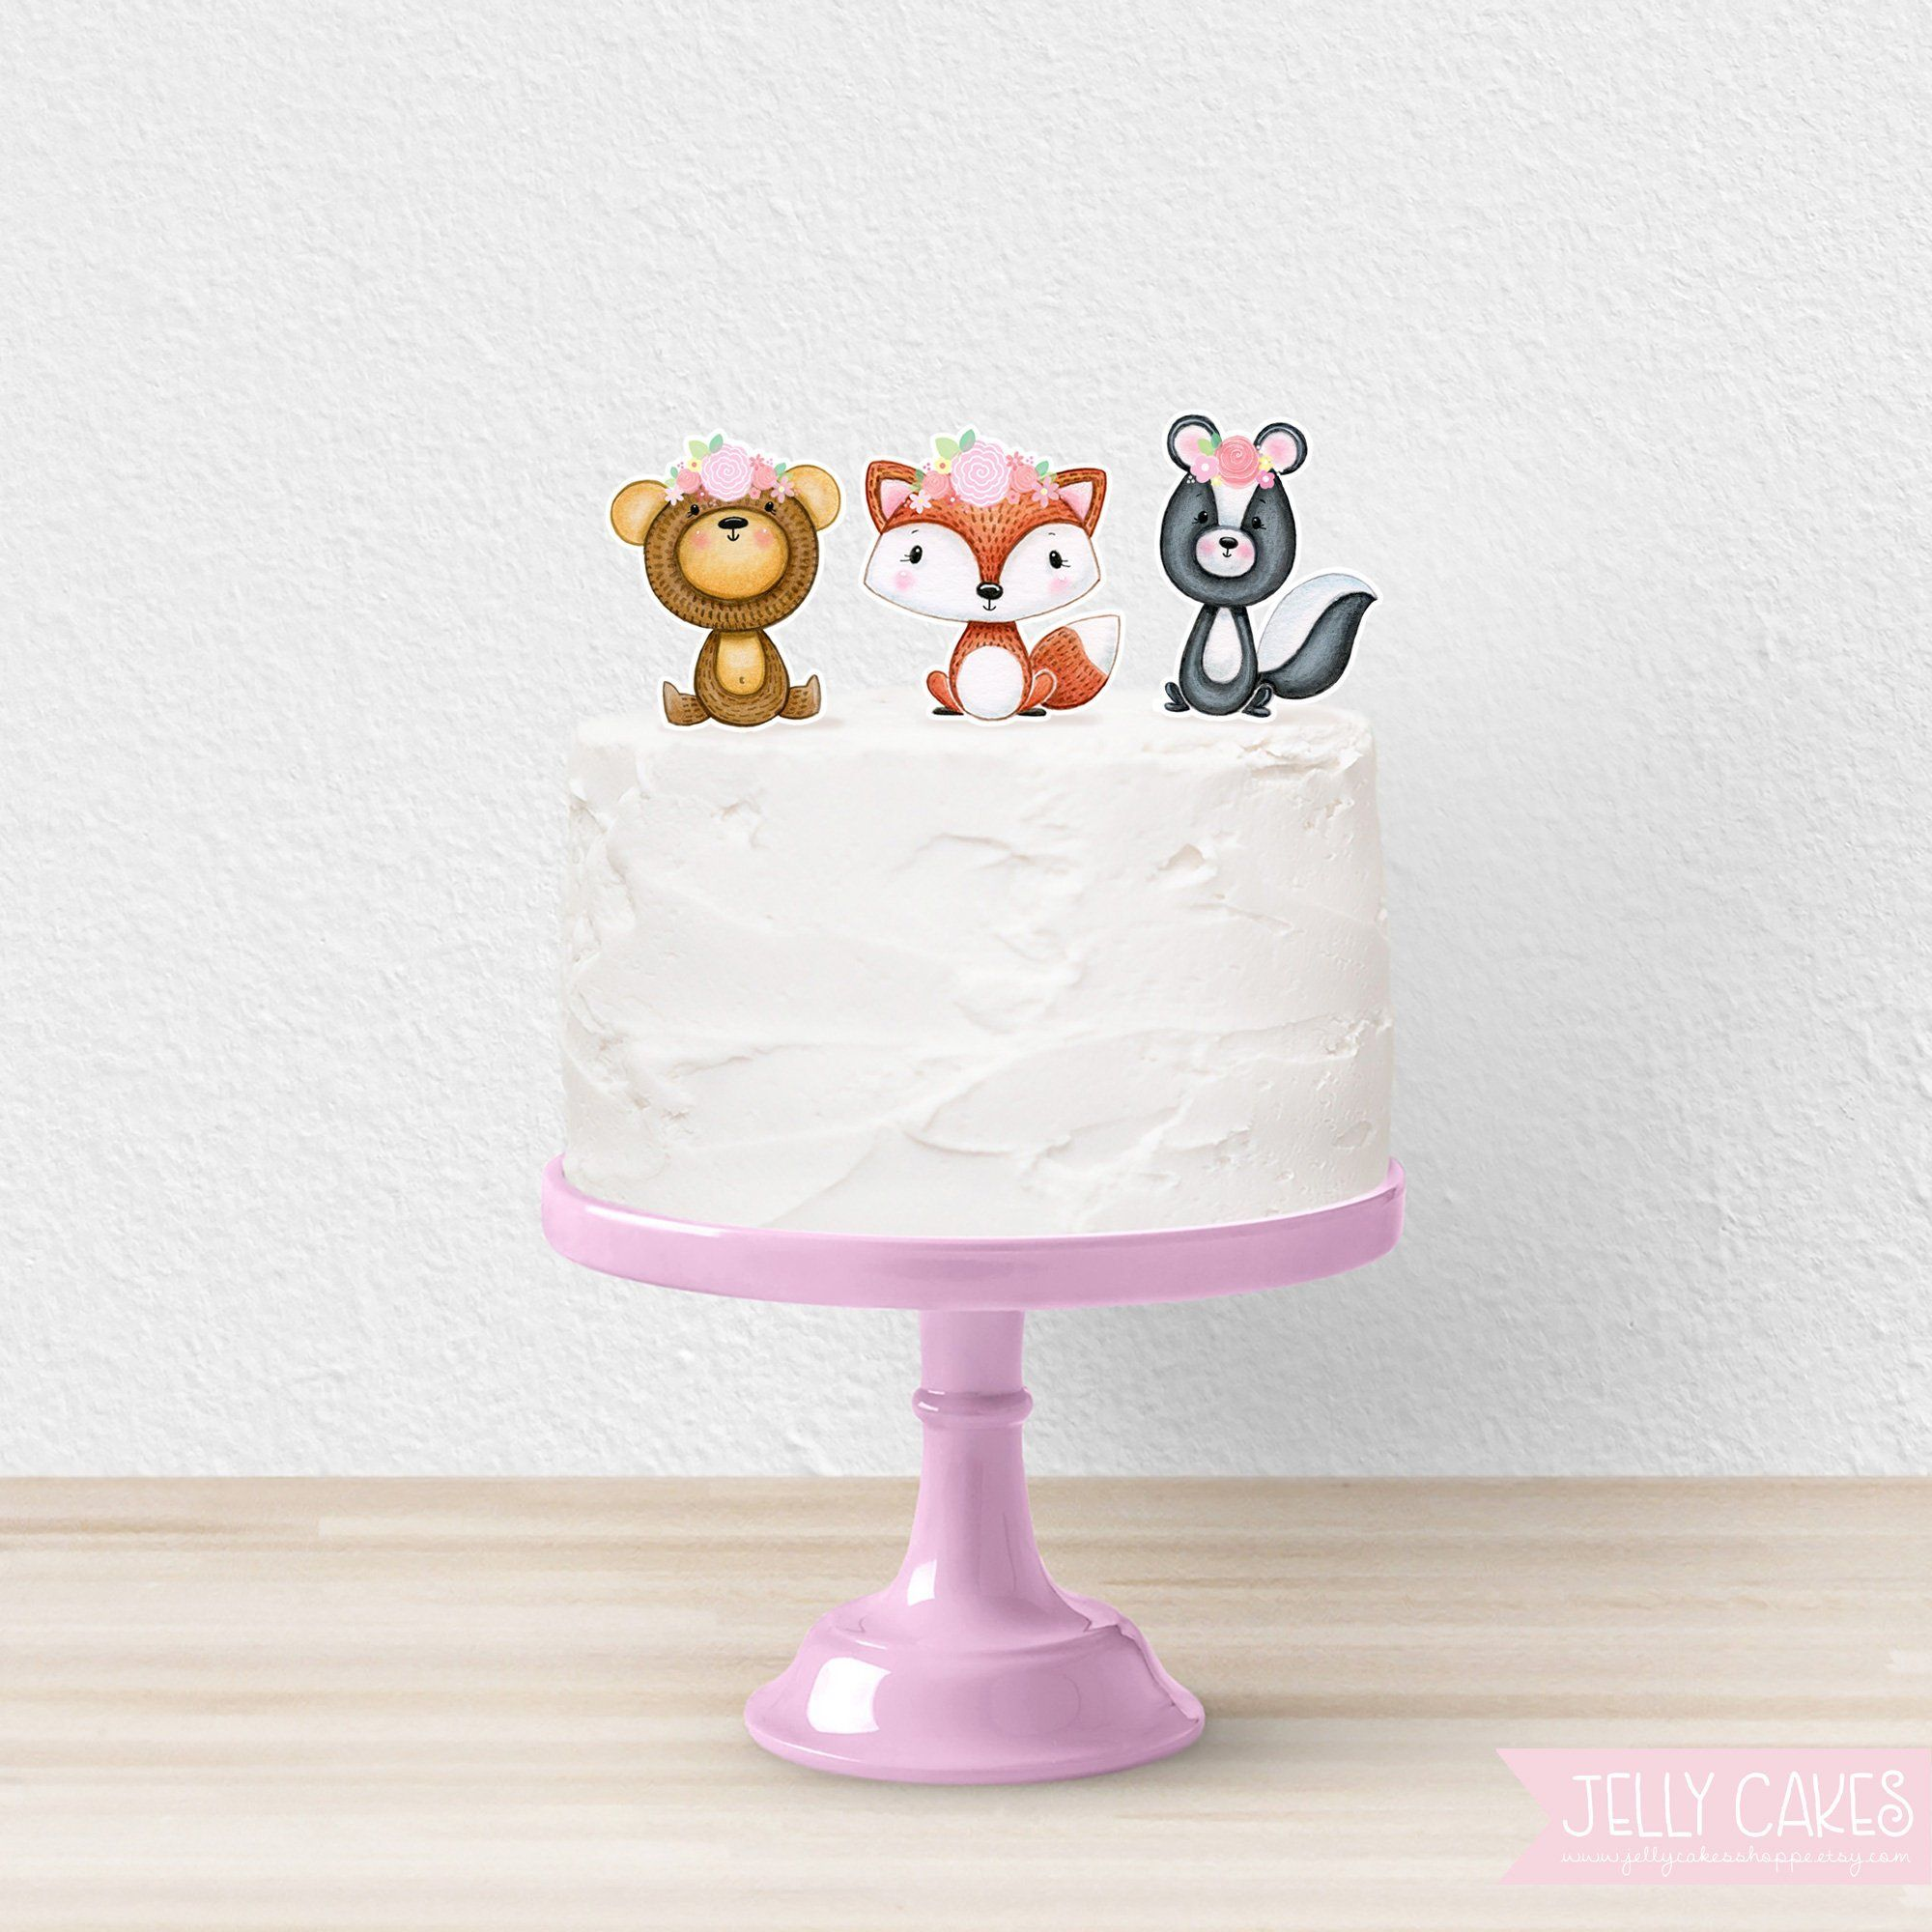 Printable Woodland Animal Cake Toppers Woodland Baby Shower Forest Animal Cake Toppers For Girl Diy Animal Cake Topper Animal Cake Unicorn Cake Decorations